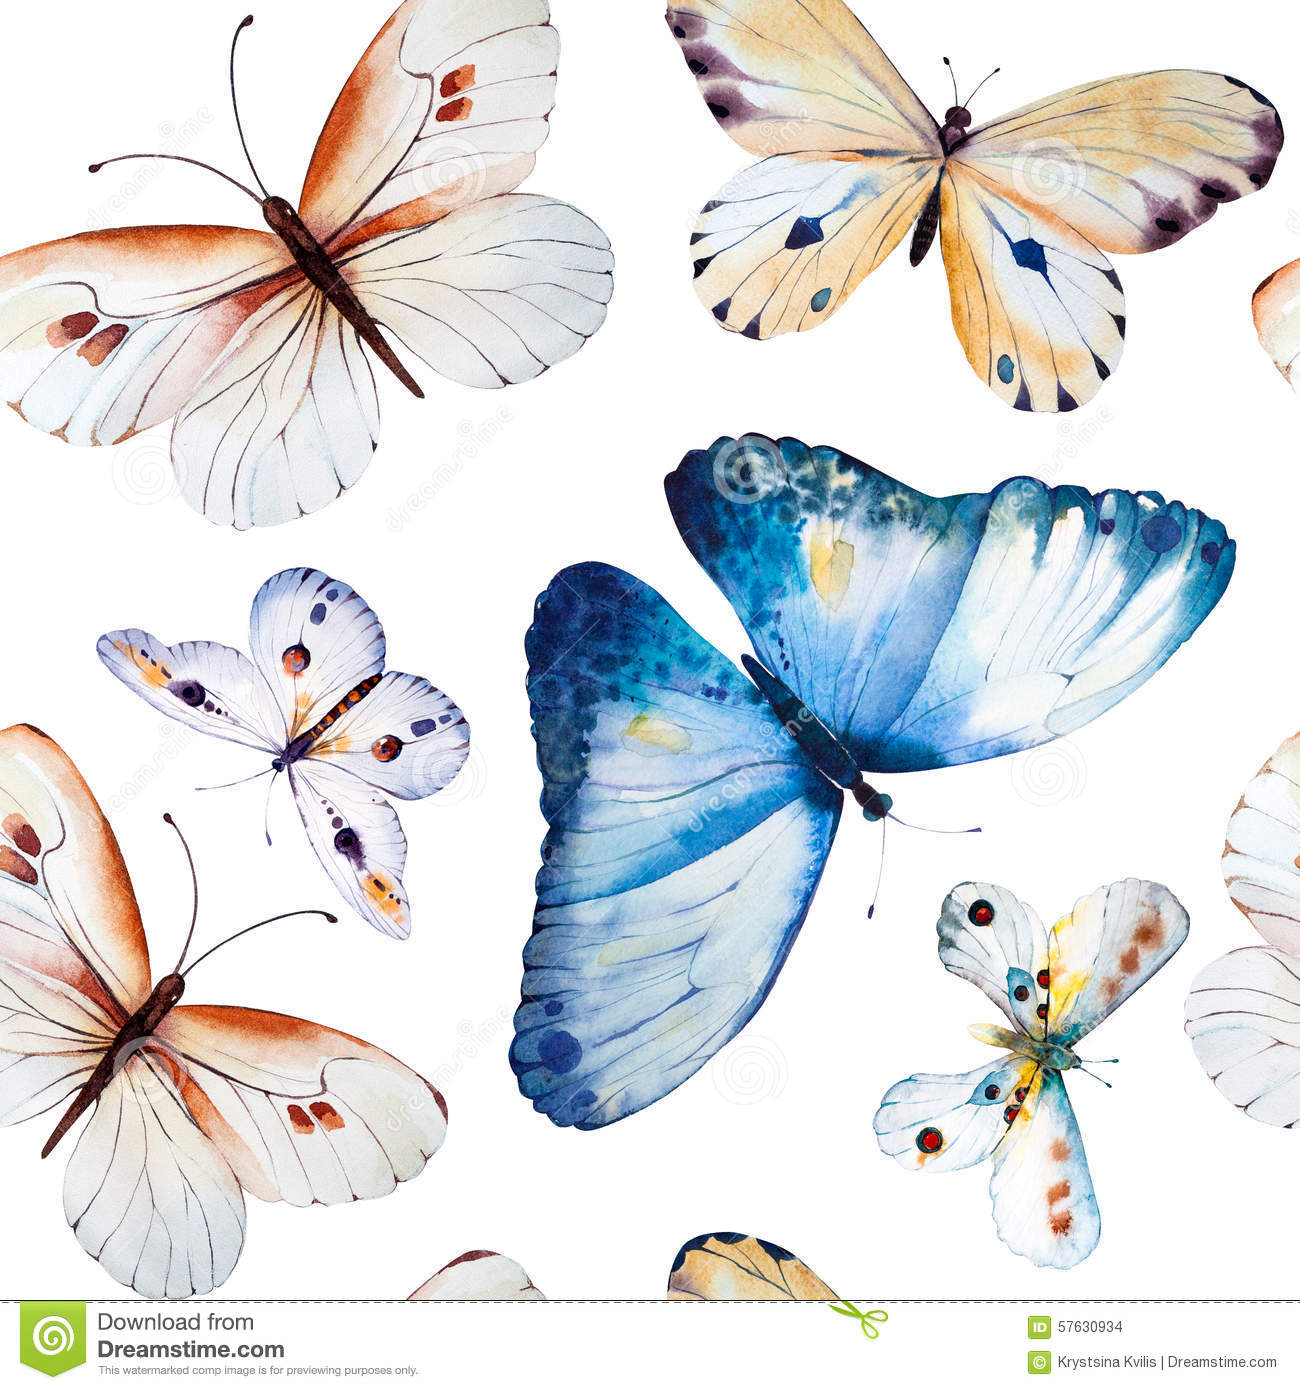 Beautiful Wallpaper Butterfly Hand - watercolor-butterflies-seamless-floral-vintage-pattern-background-wallpaper-hand-painted-illustration-57630934  Photograph_99254.jpg